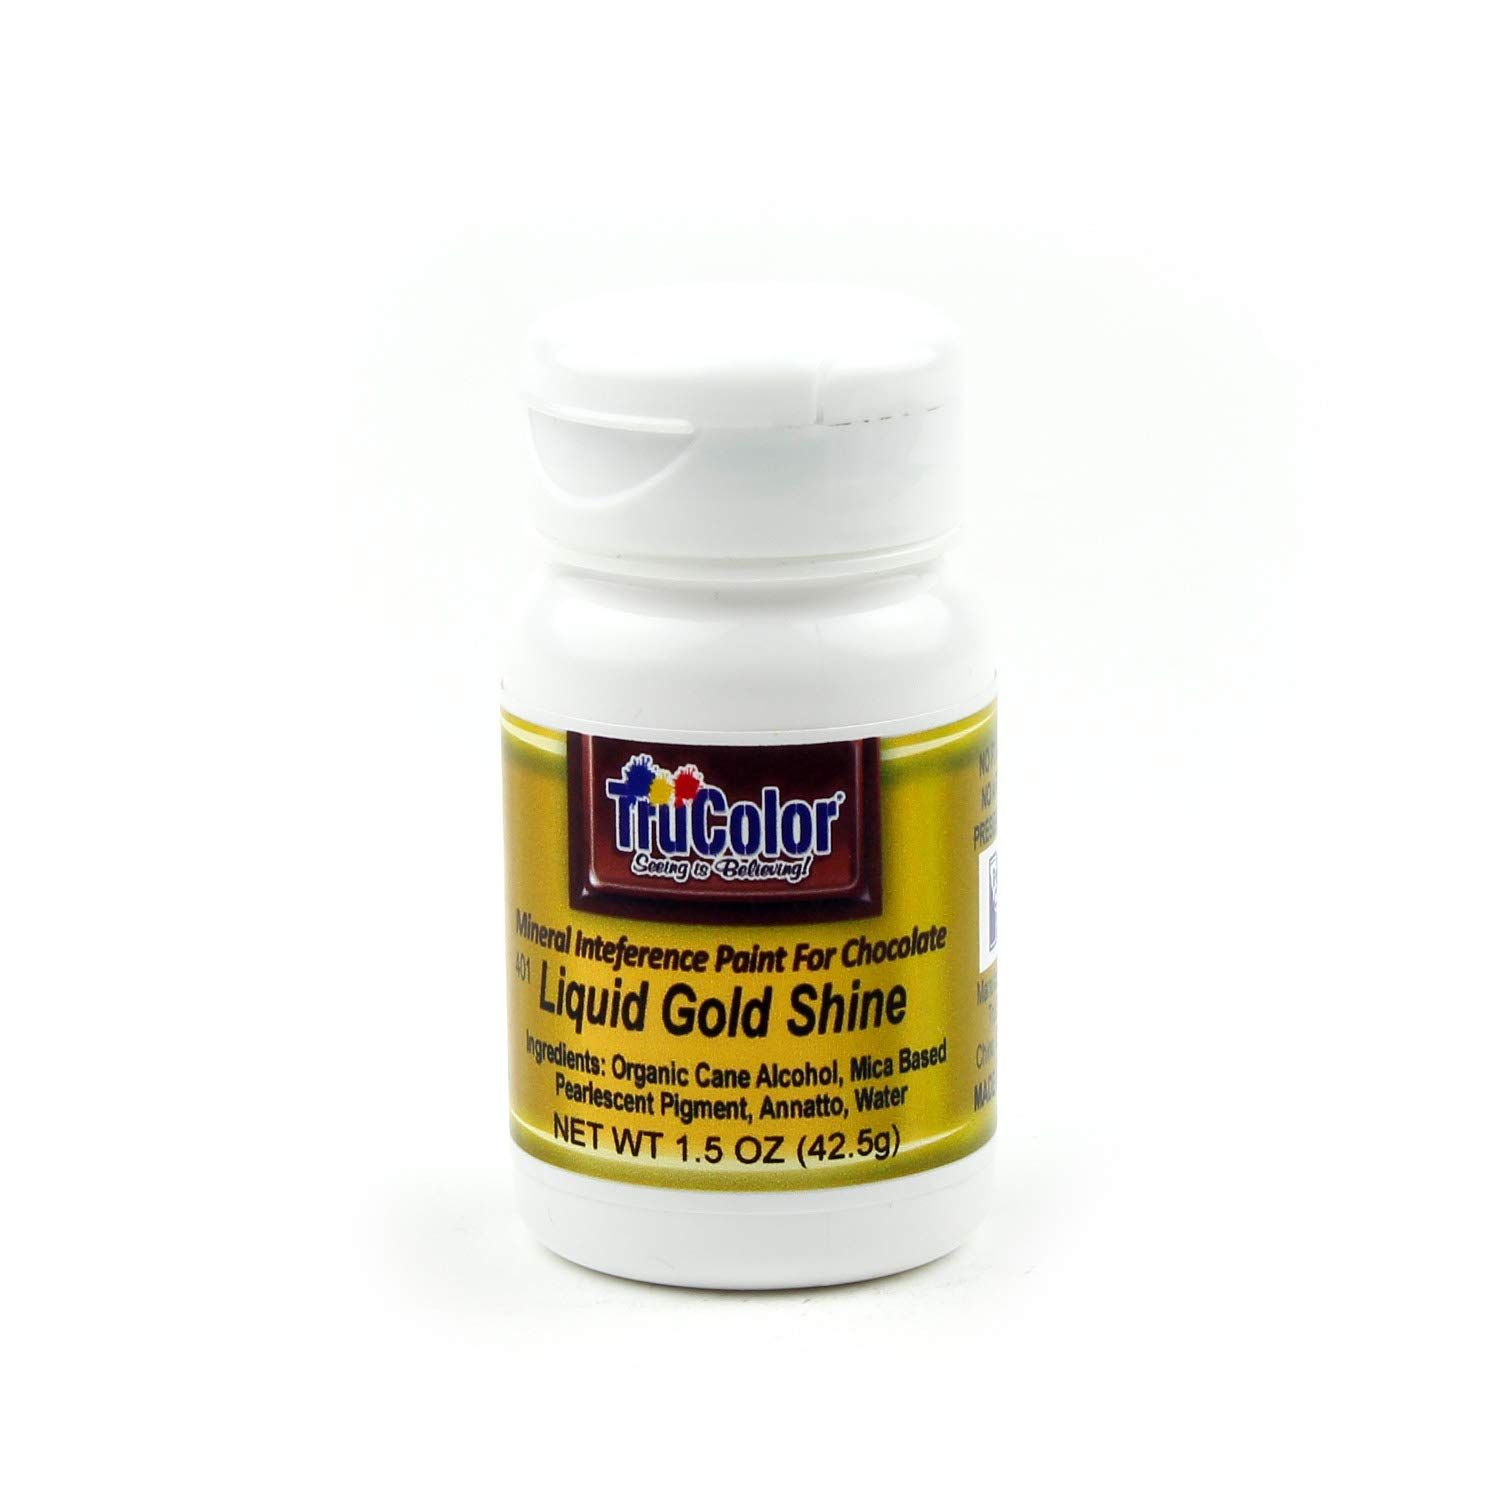 TruColor Liquid Shine 100-Percent-Natural Metallic Gold Food Color Paint, 42.5 Grams